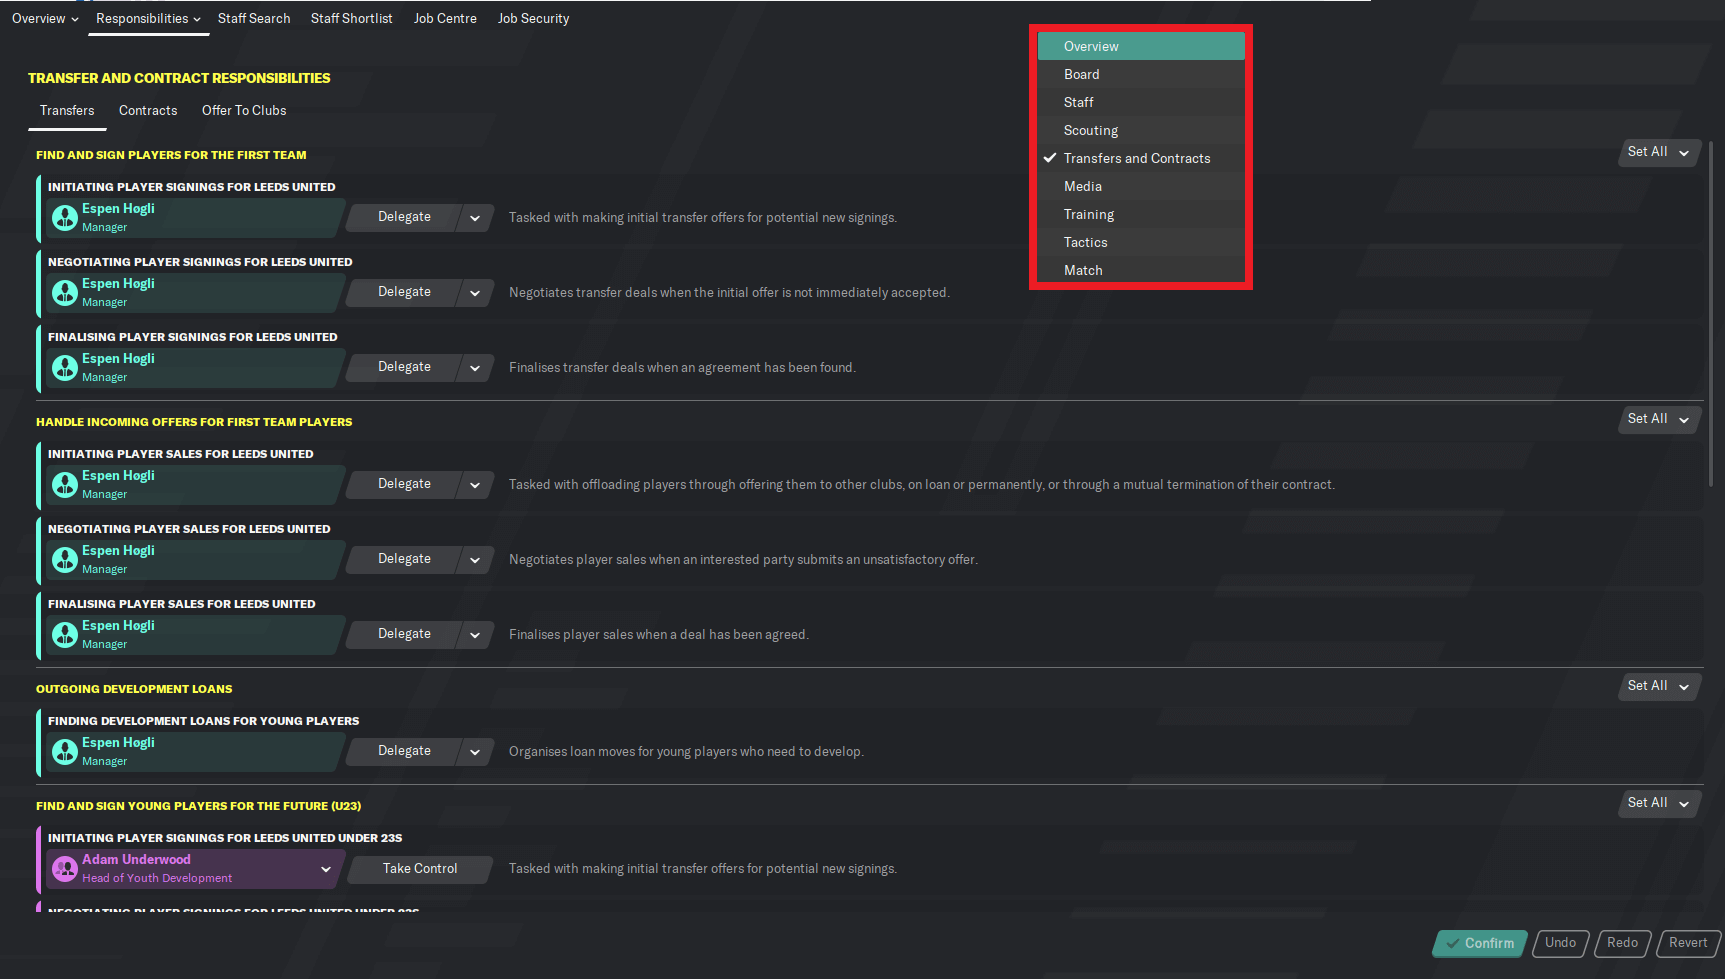 Football Manager staff responsibilities transfers contracts